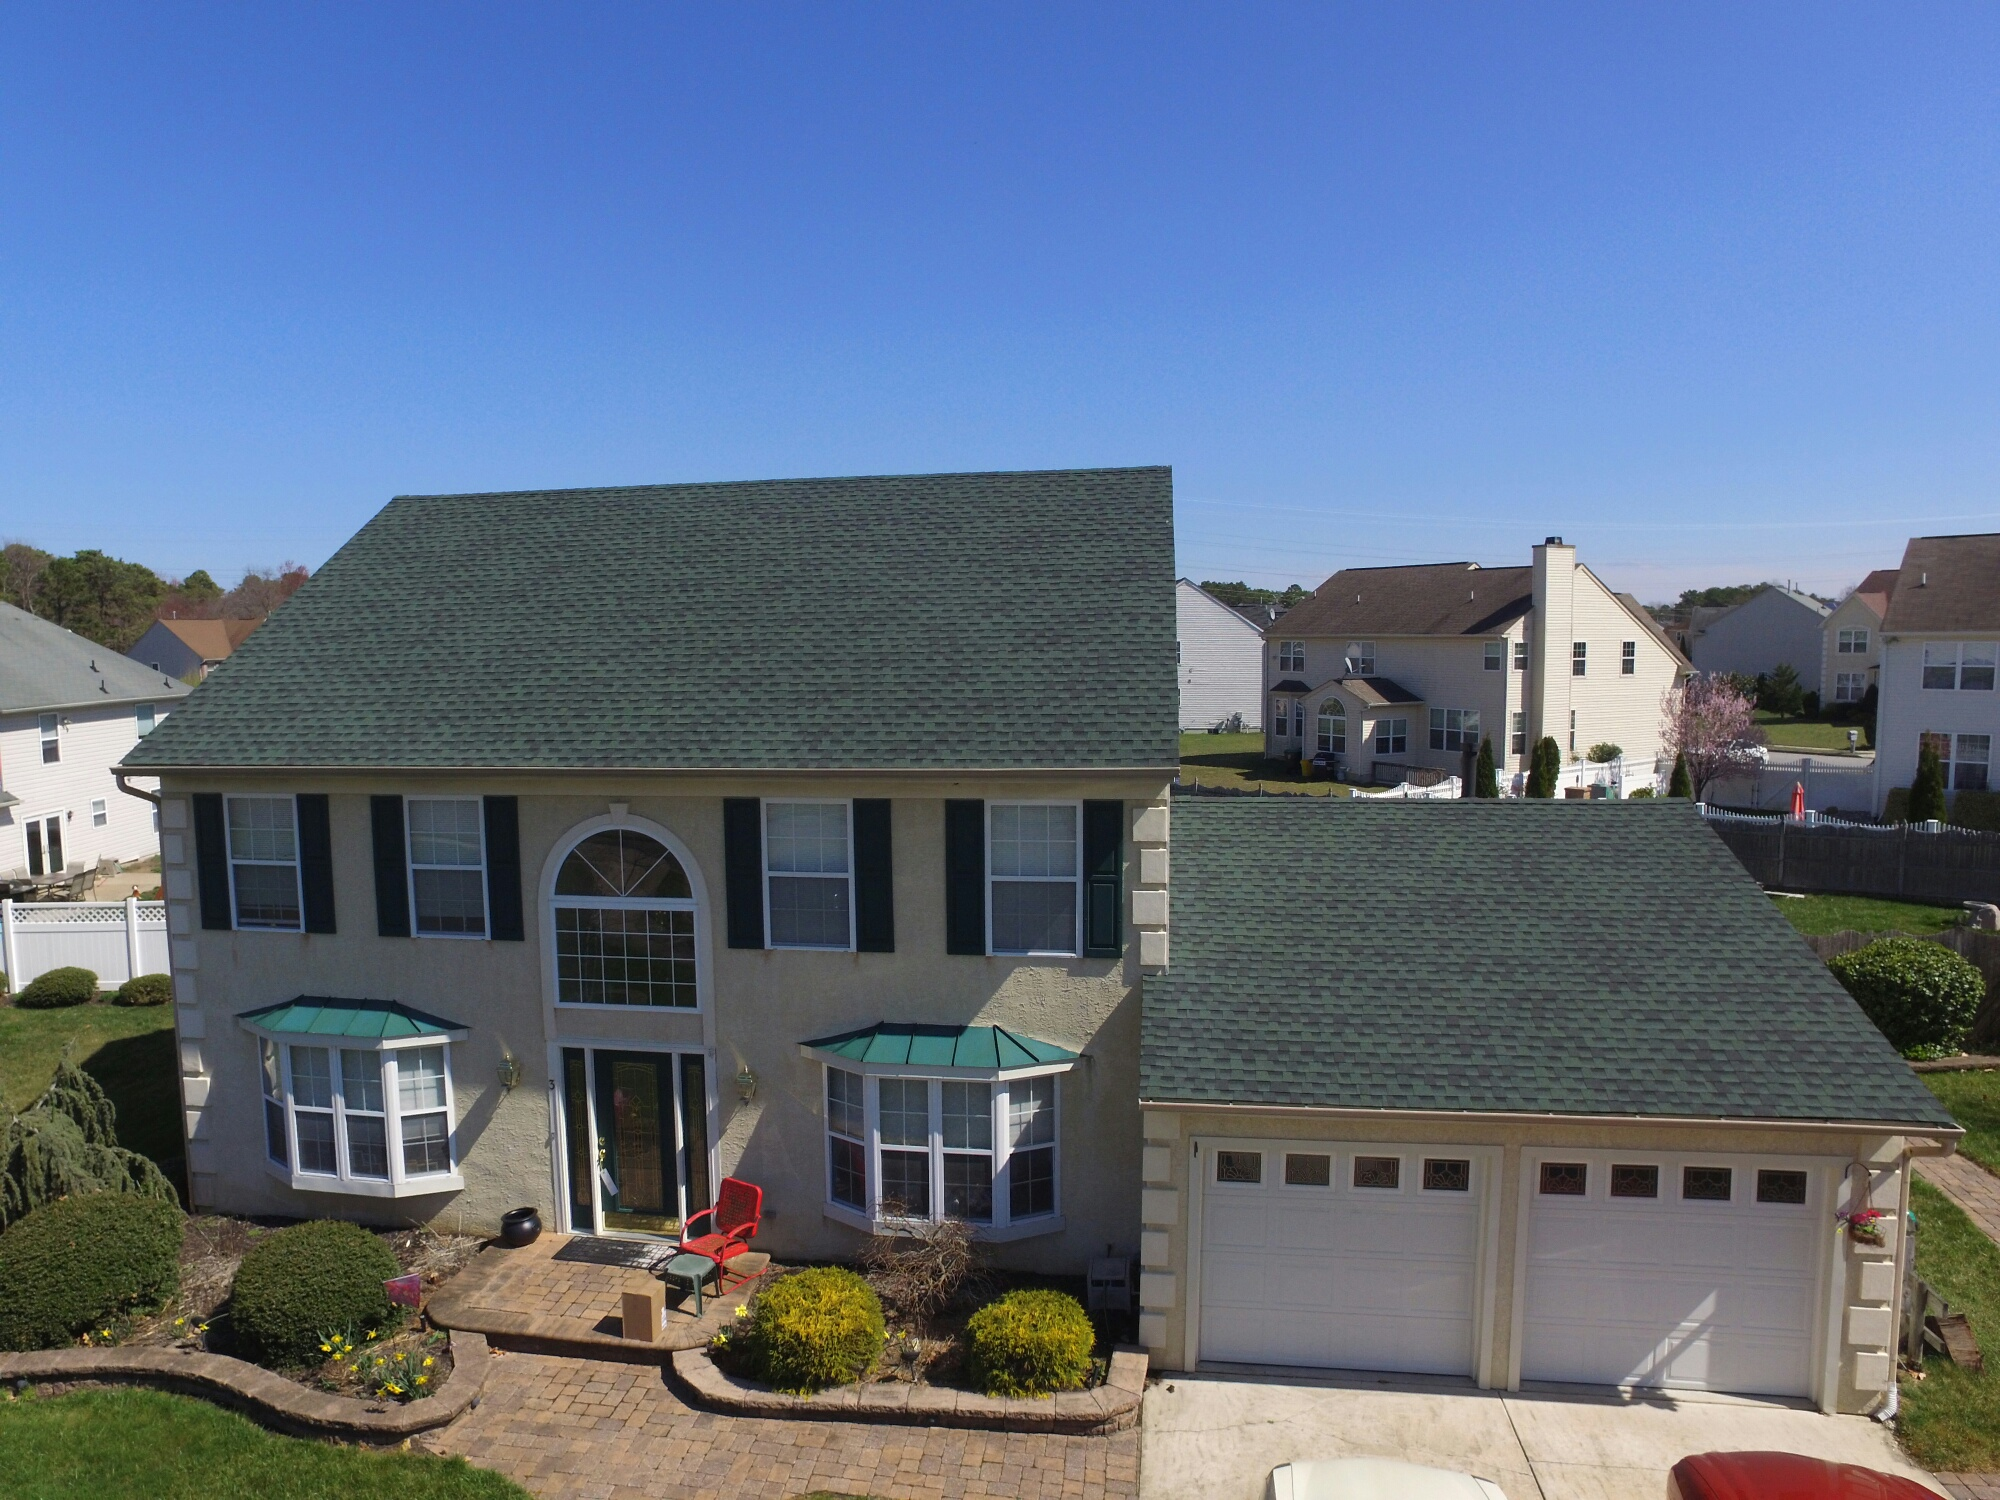 Gaf Timberline Hd Roofing System With Hunter Green